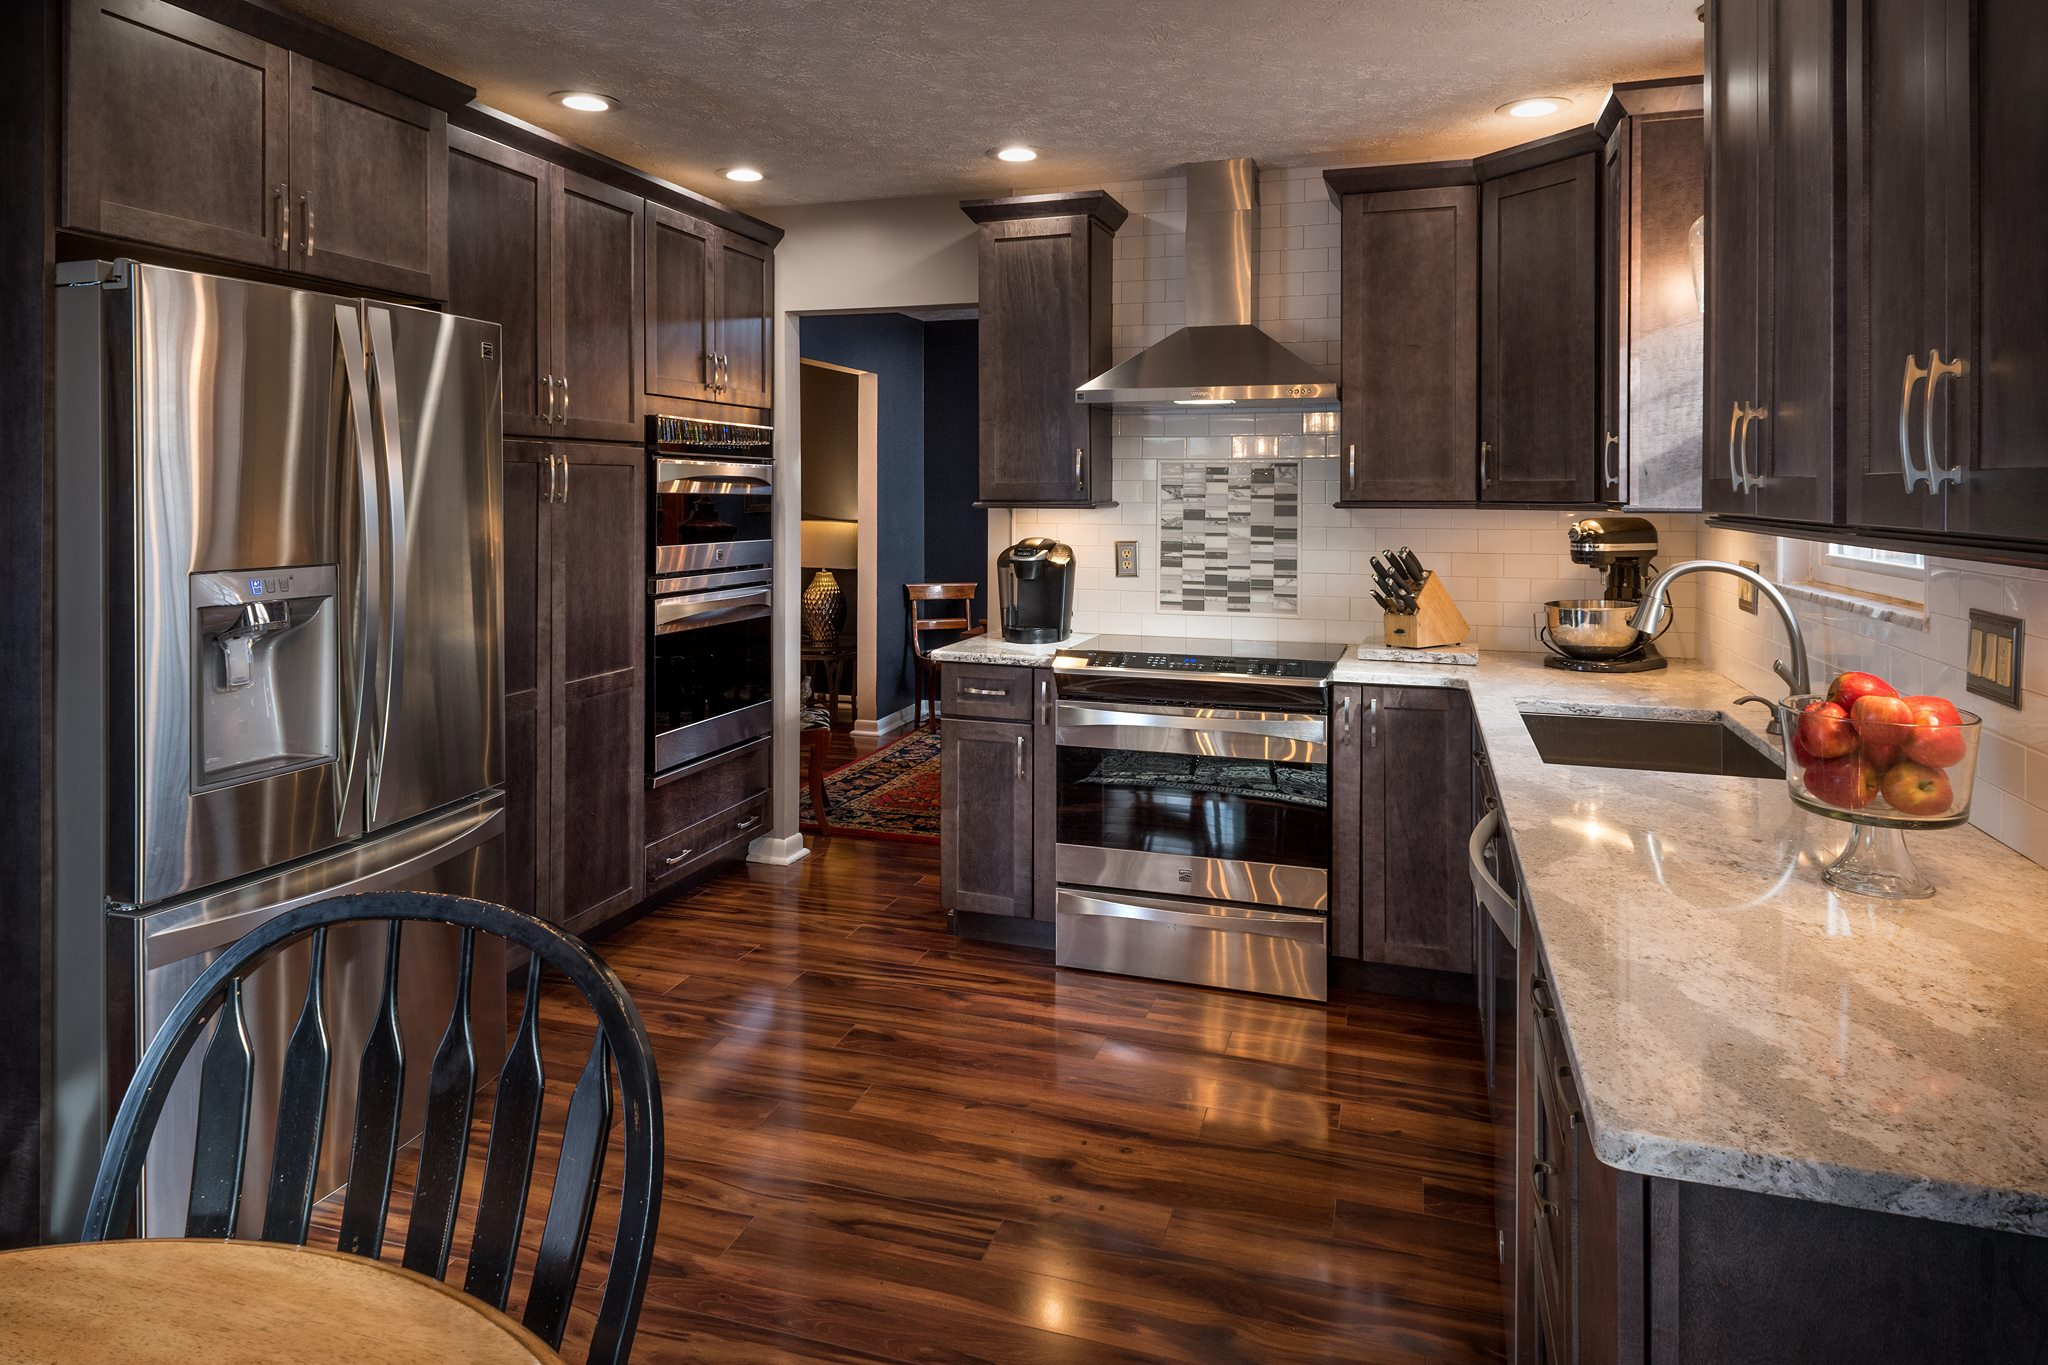 The Heart Of The Home Affordable Kitchen Redesign With Jonathan O Brien Whatcomtalk